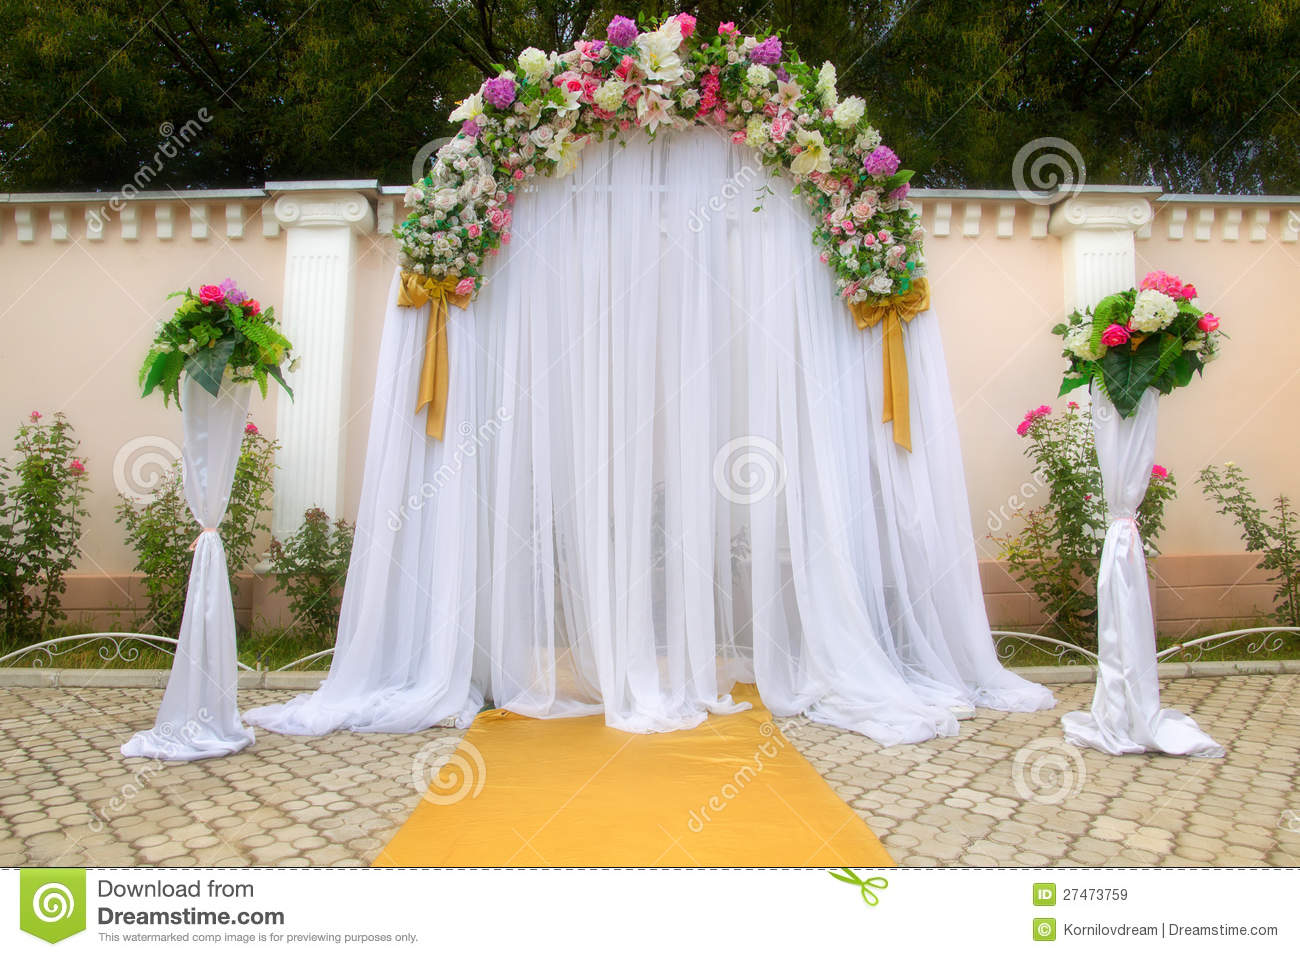 Wedding arch with flowers stock image image of flowers for Archway decoration ideas